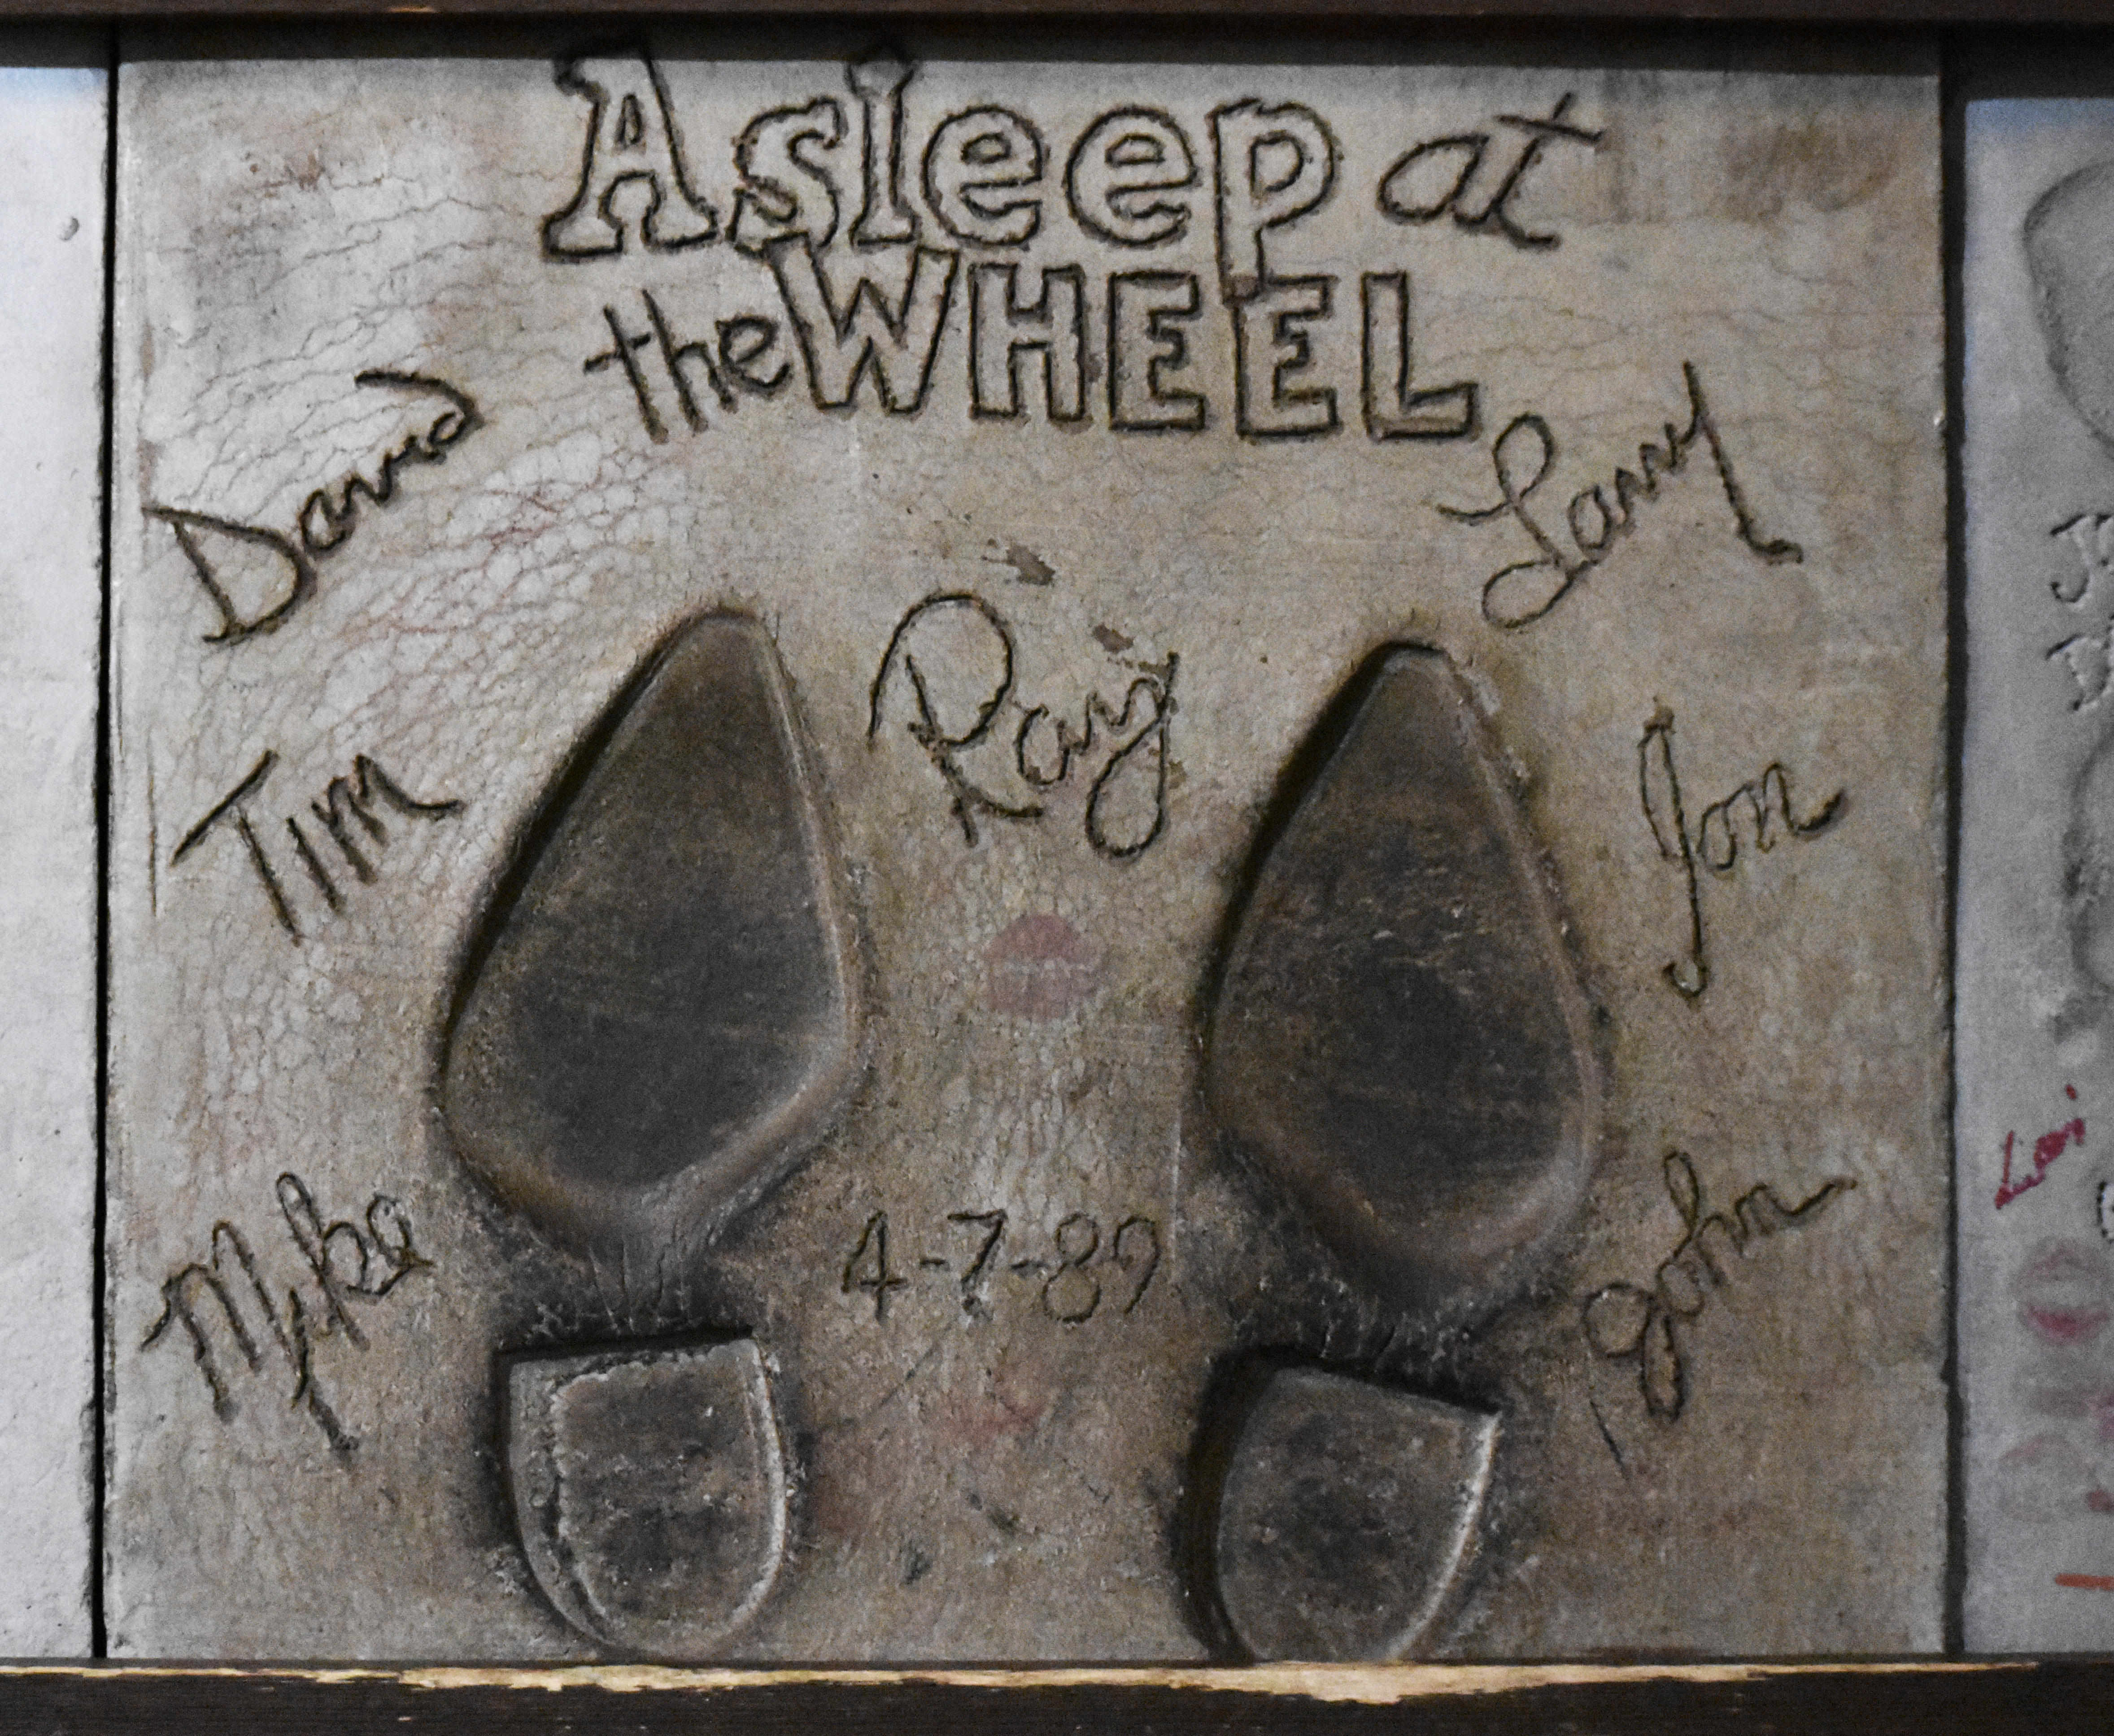 Asleep at the Wheel - Aug 14